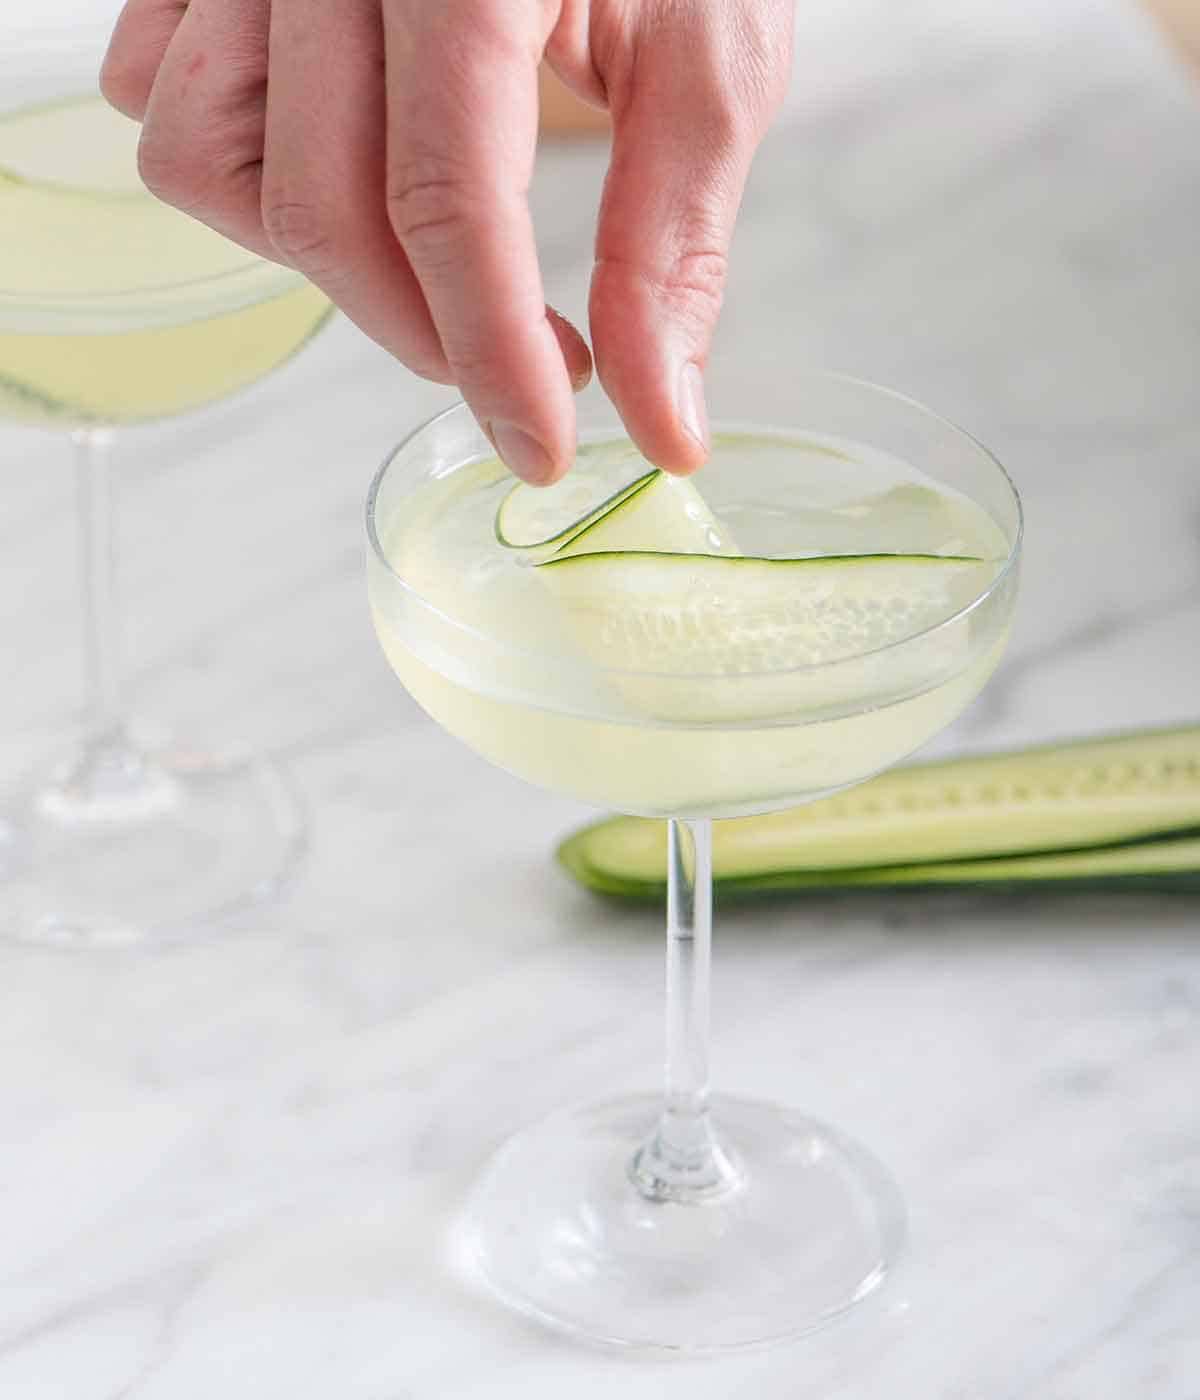 A hand placing in a sliced cucumber into a glass of cucumber martini.